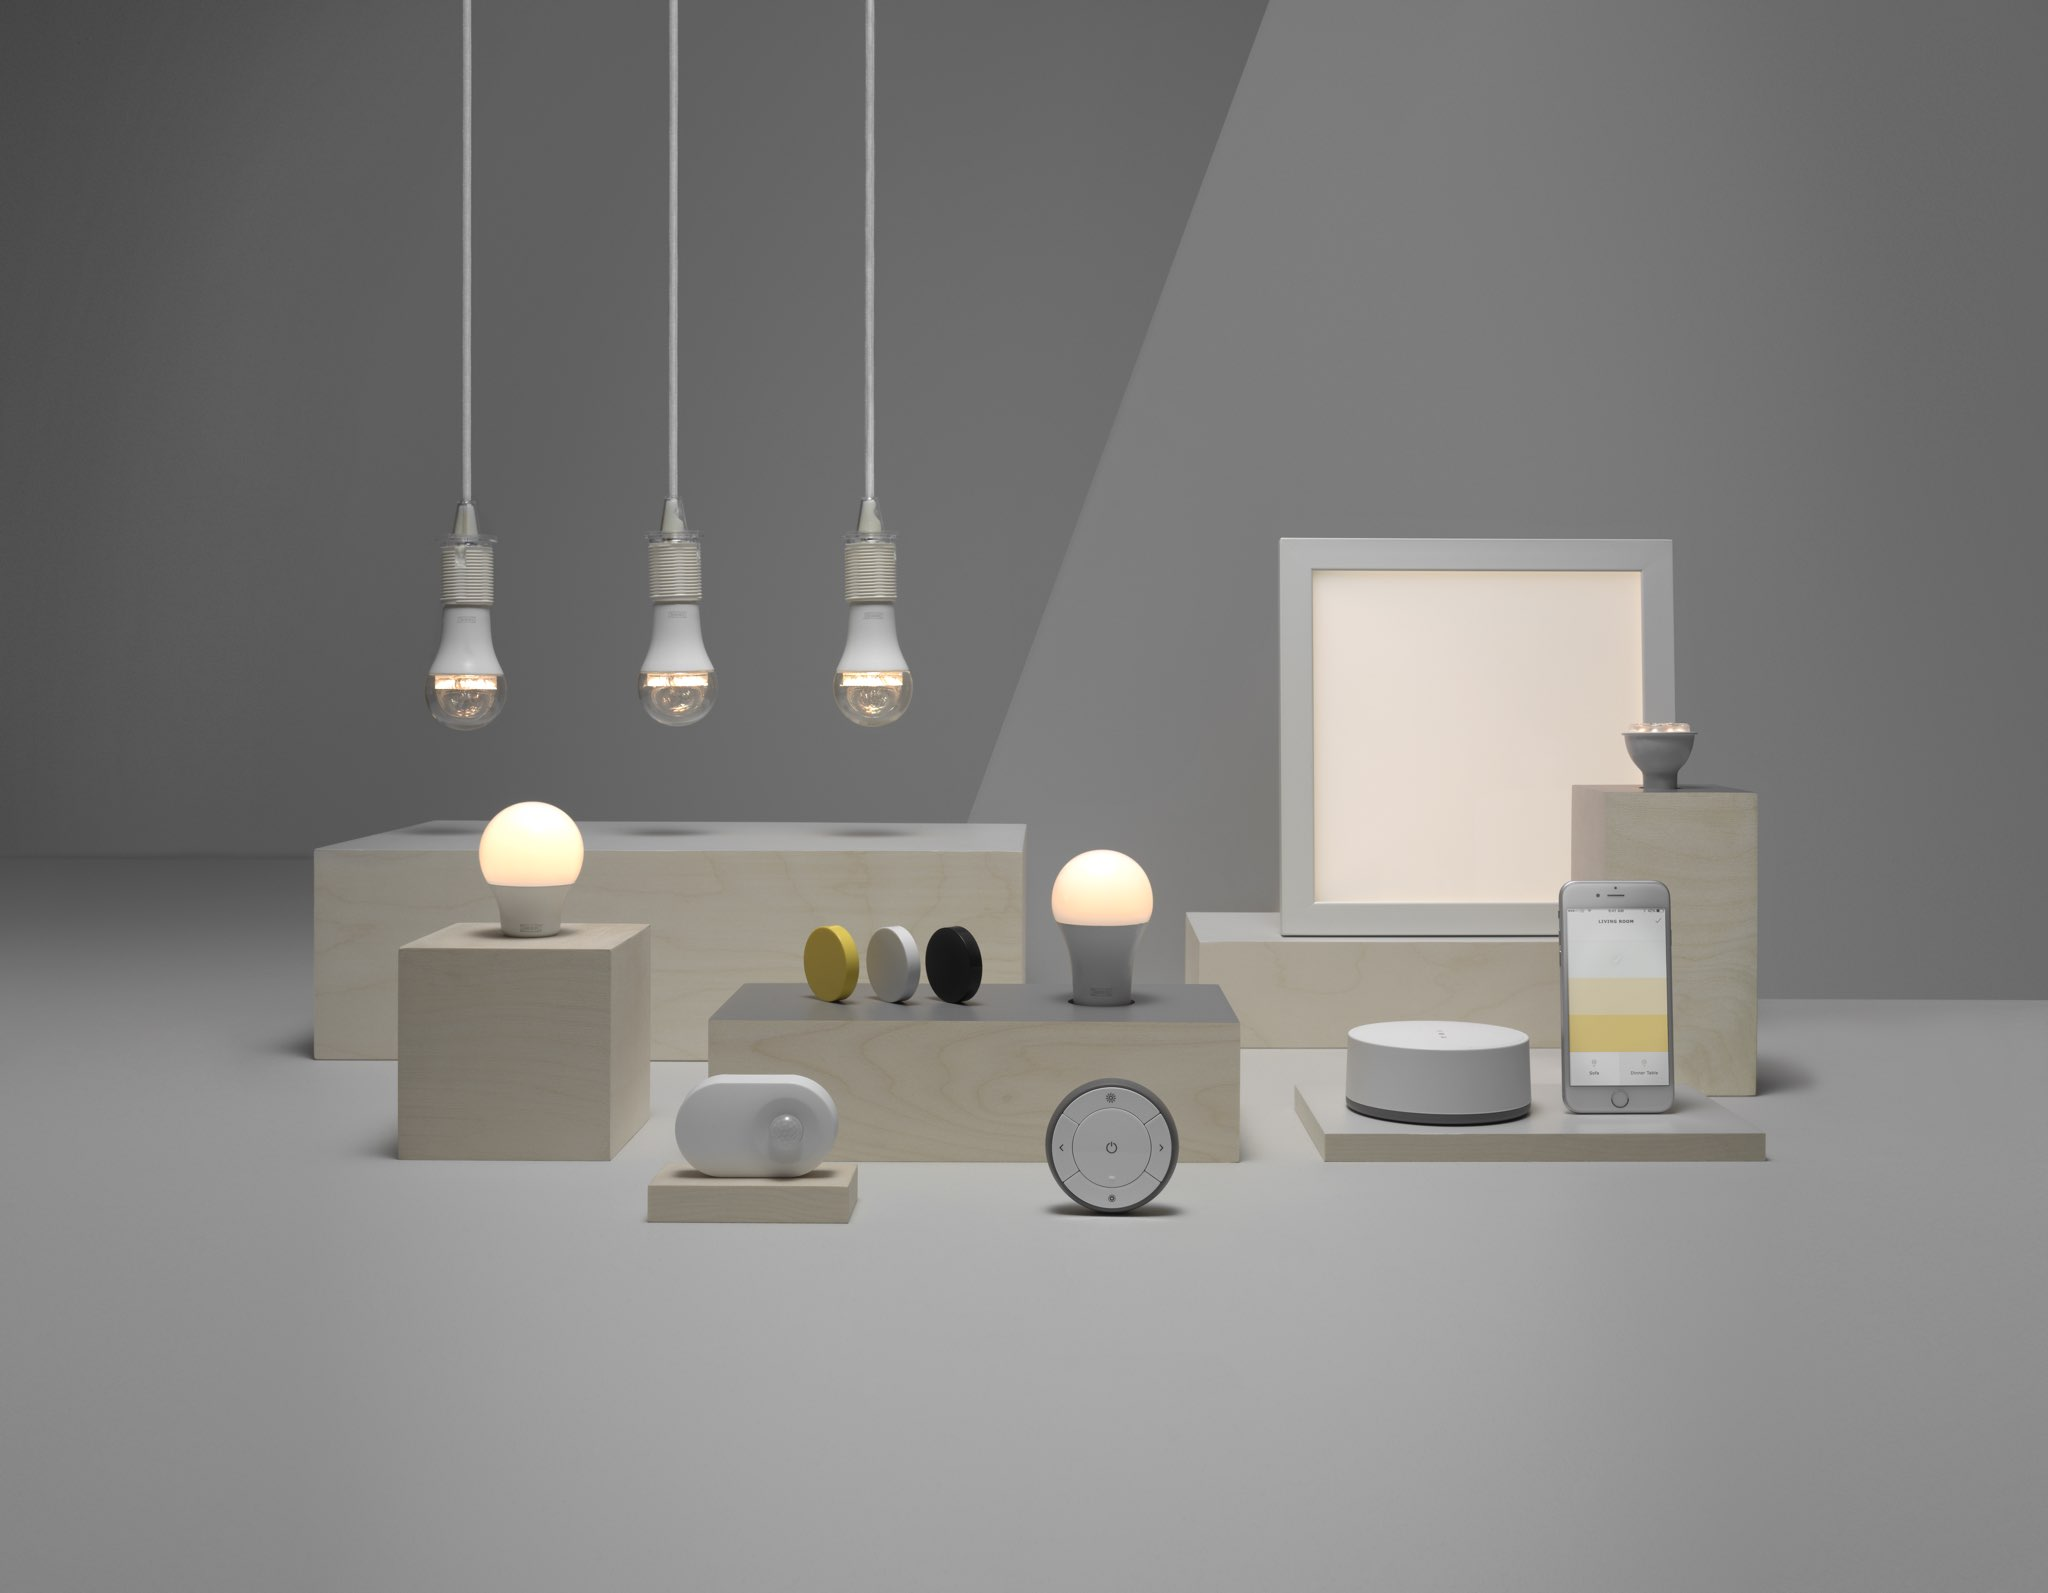 Ikea System Upcoming Homekit Support Will Let You Voice Control Your